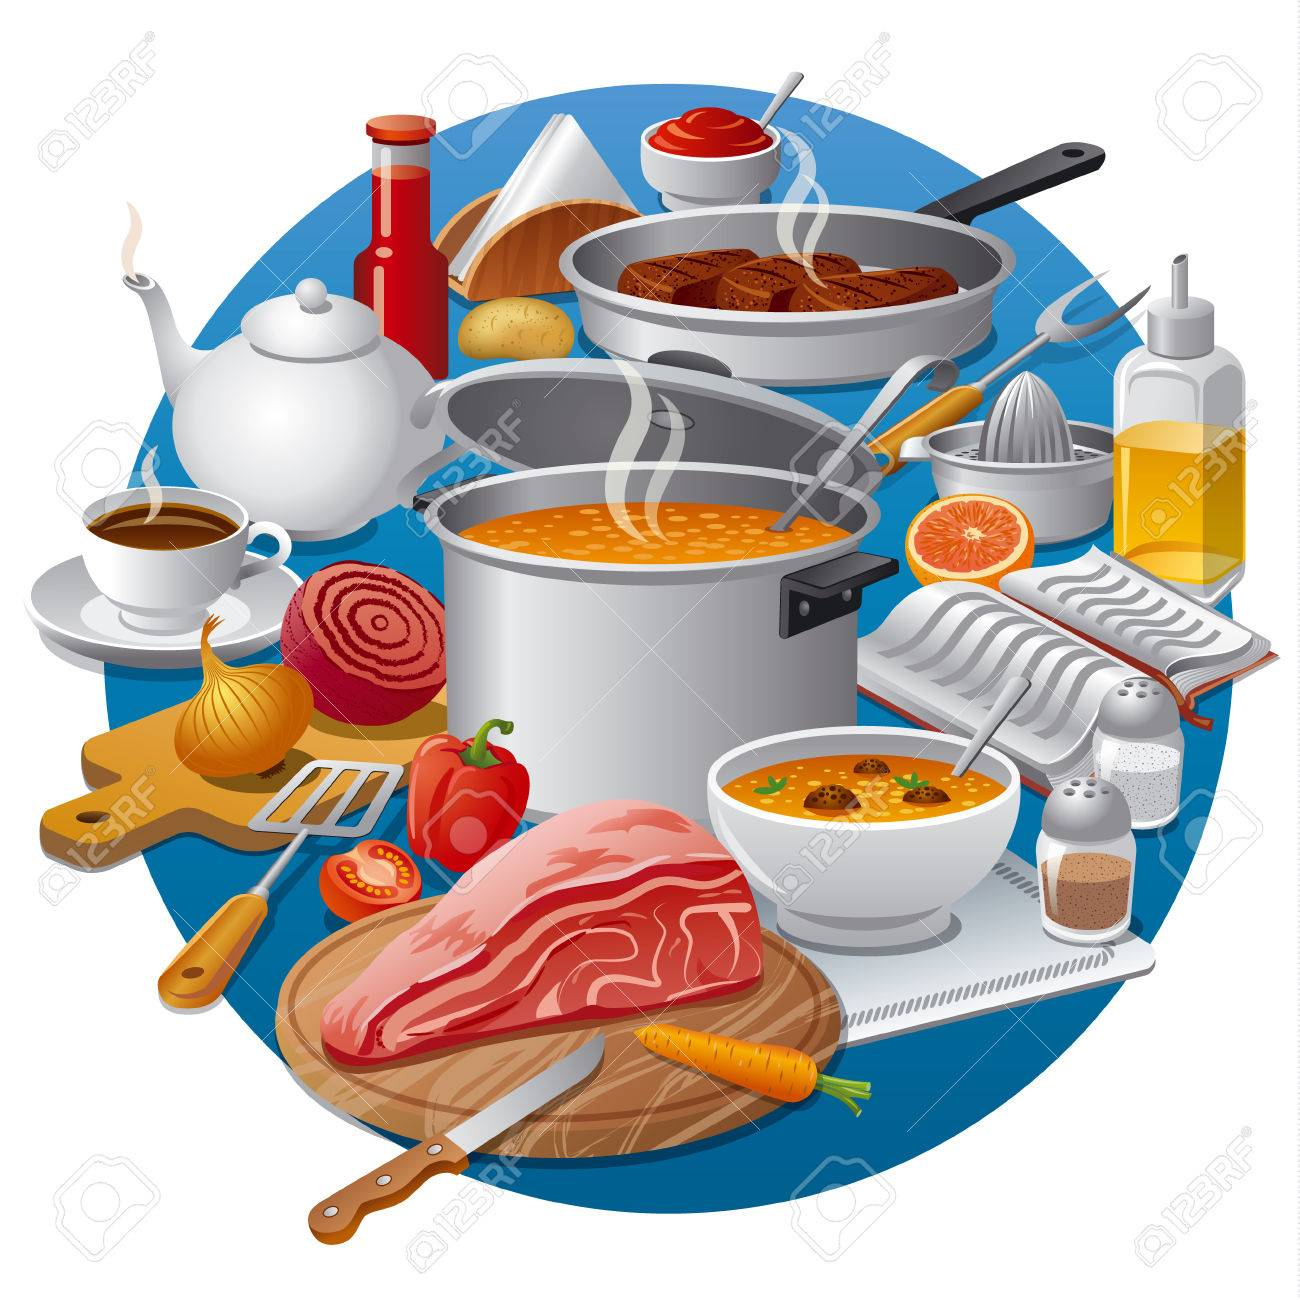 cooking food royalty free cliparts vectors and stock illustration rh 123rf com